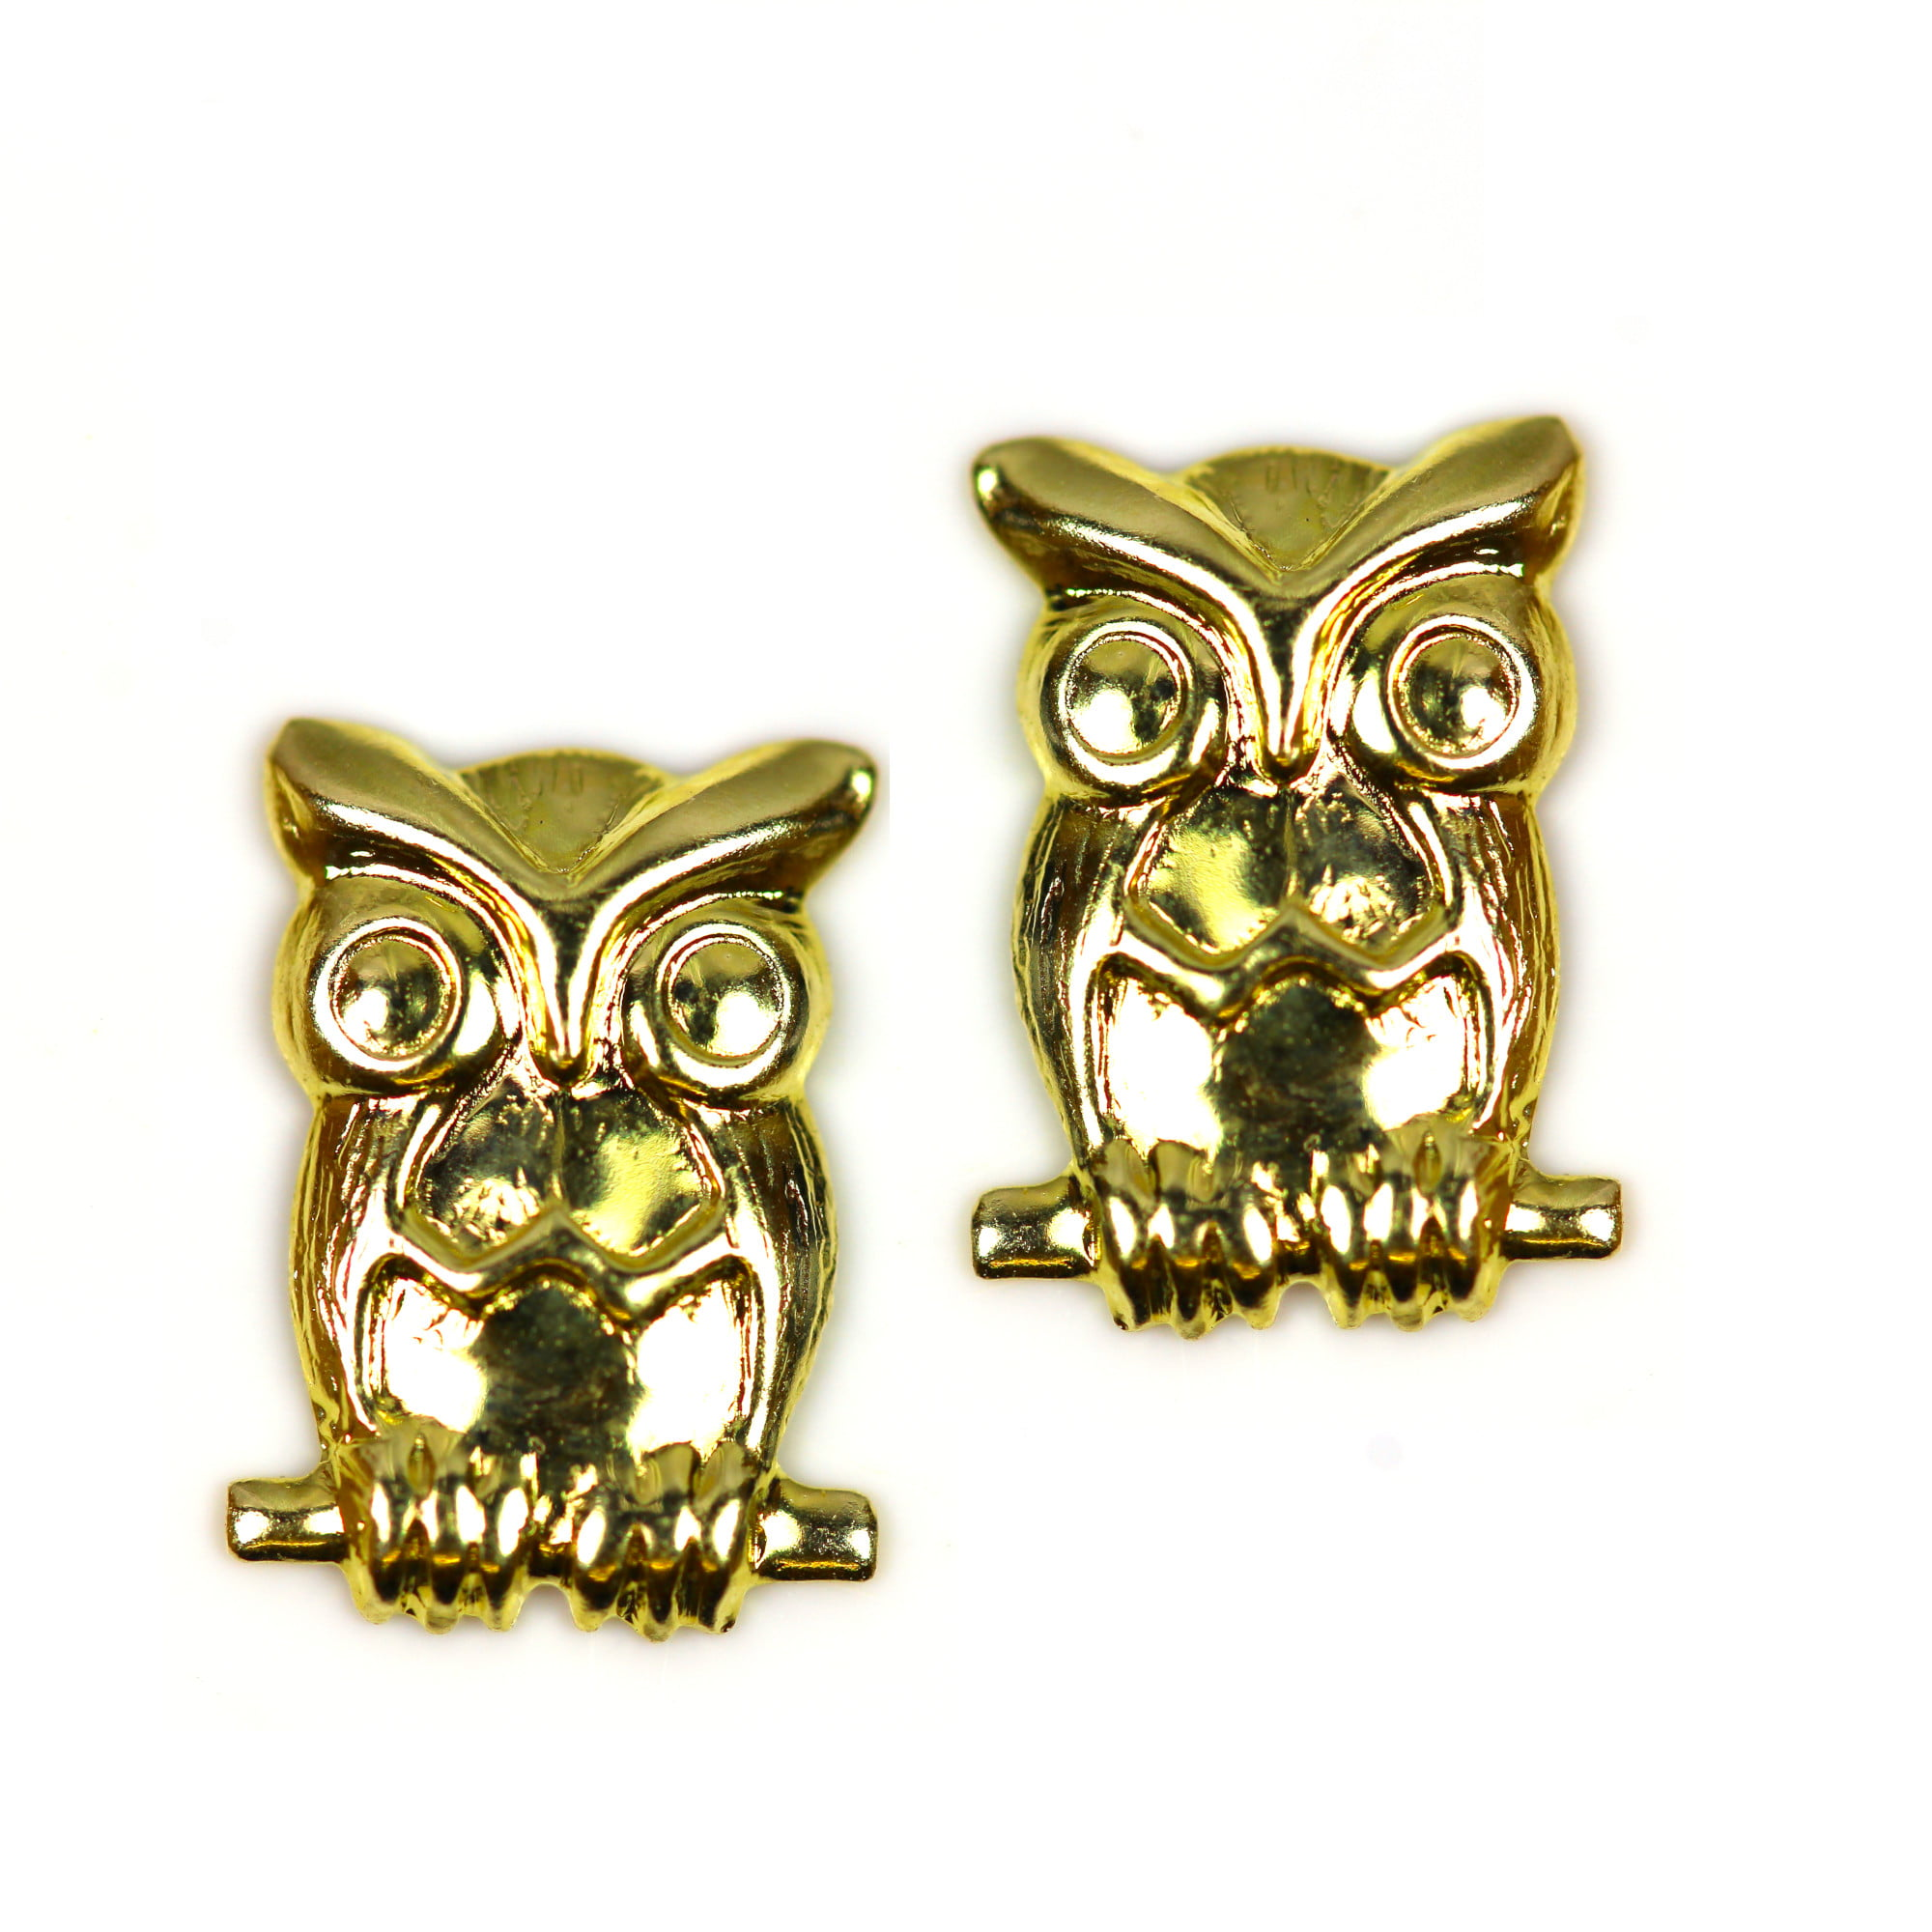 Owl earrings in 9ct gold